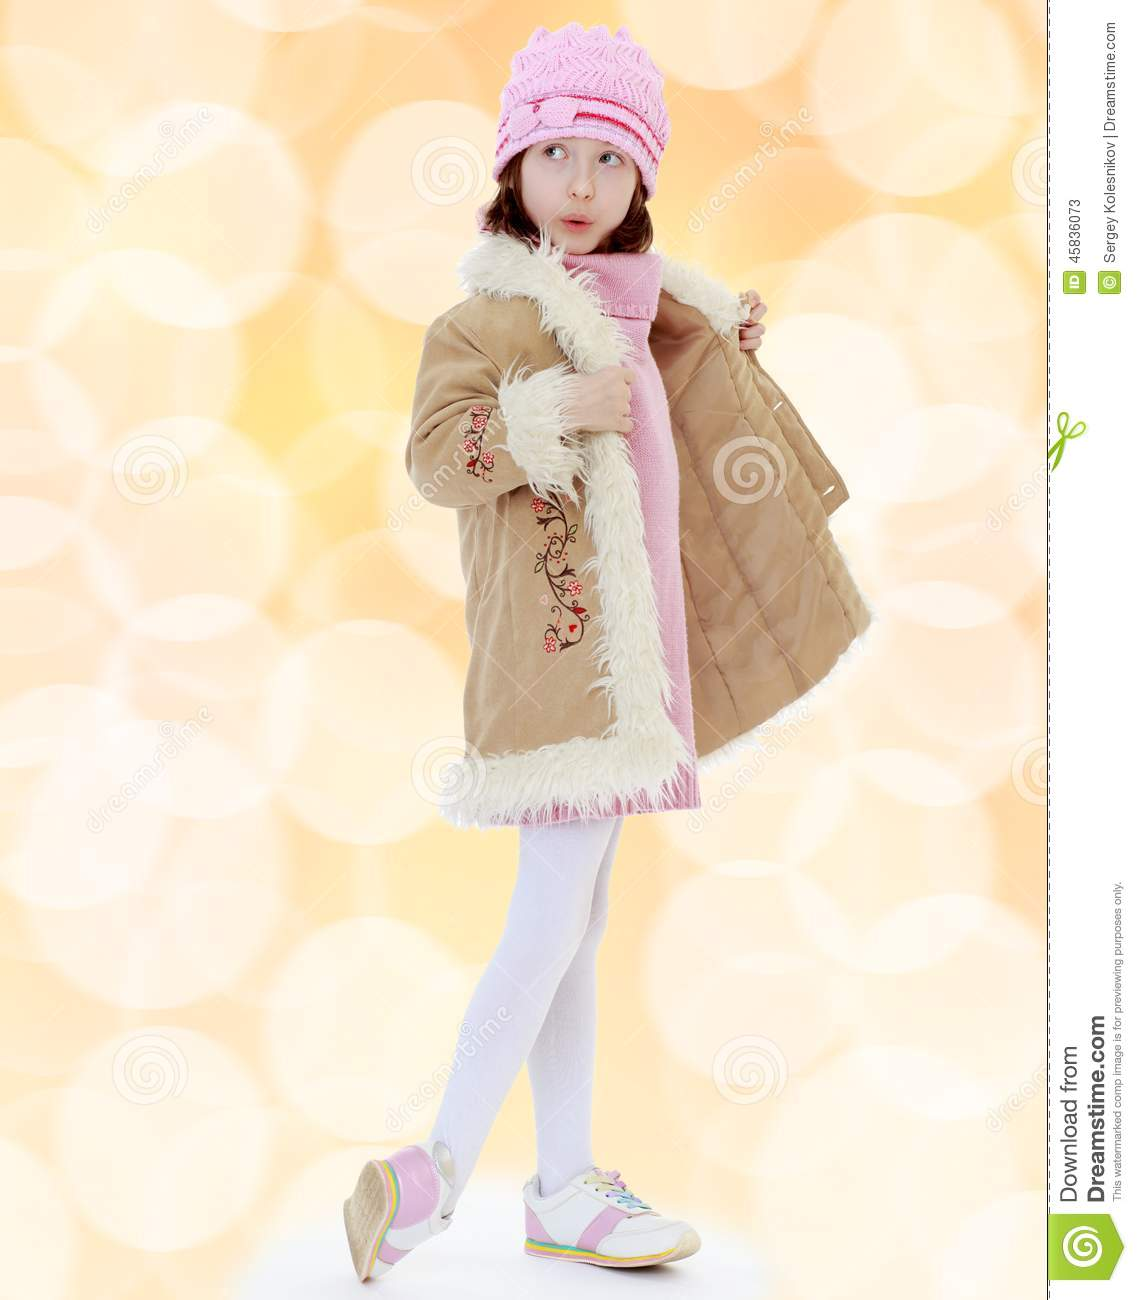 Fashionable little girl in a fur coat.